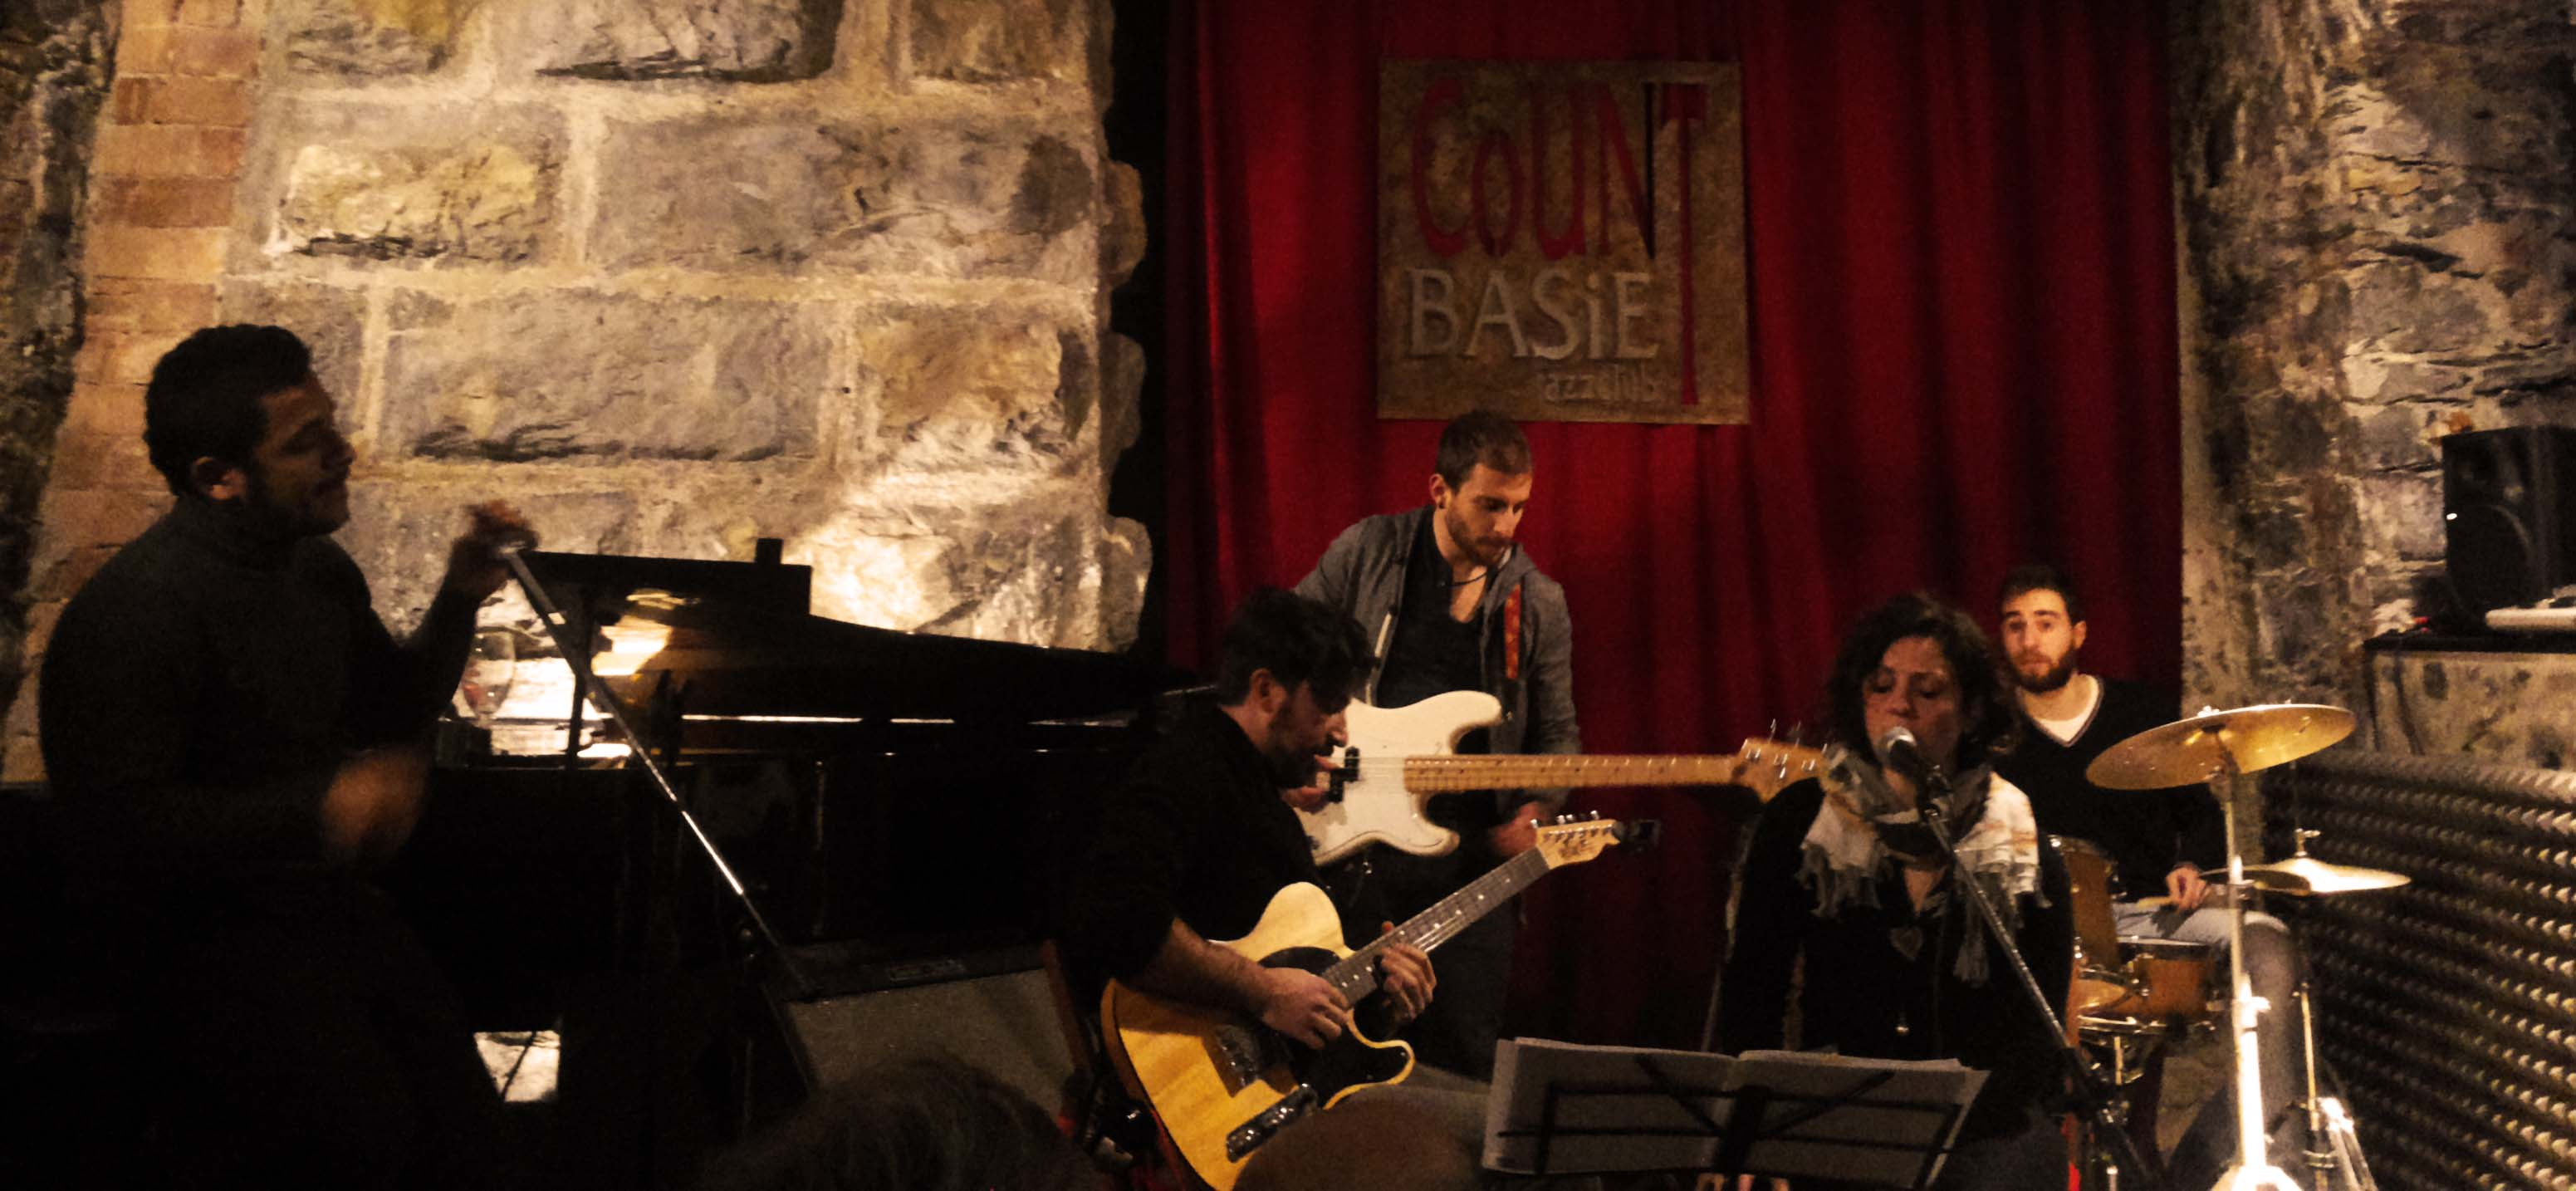 Concerti al Count Basie Jazz Club